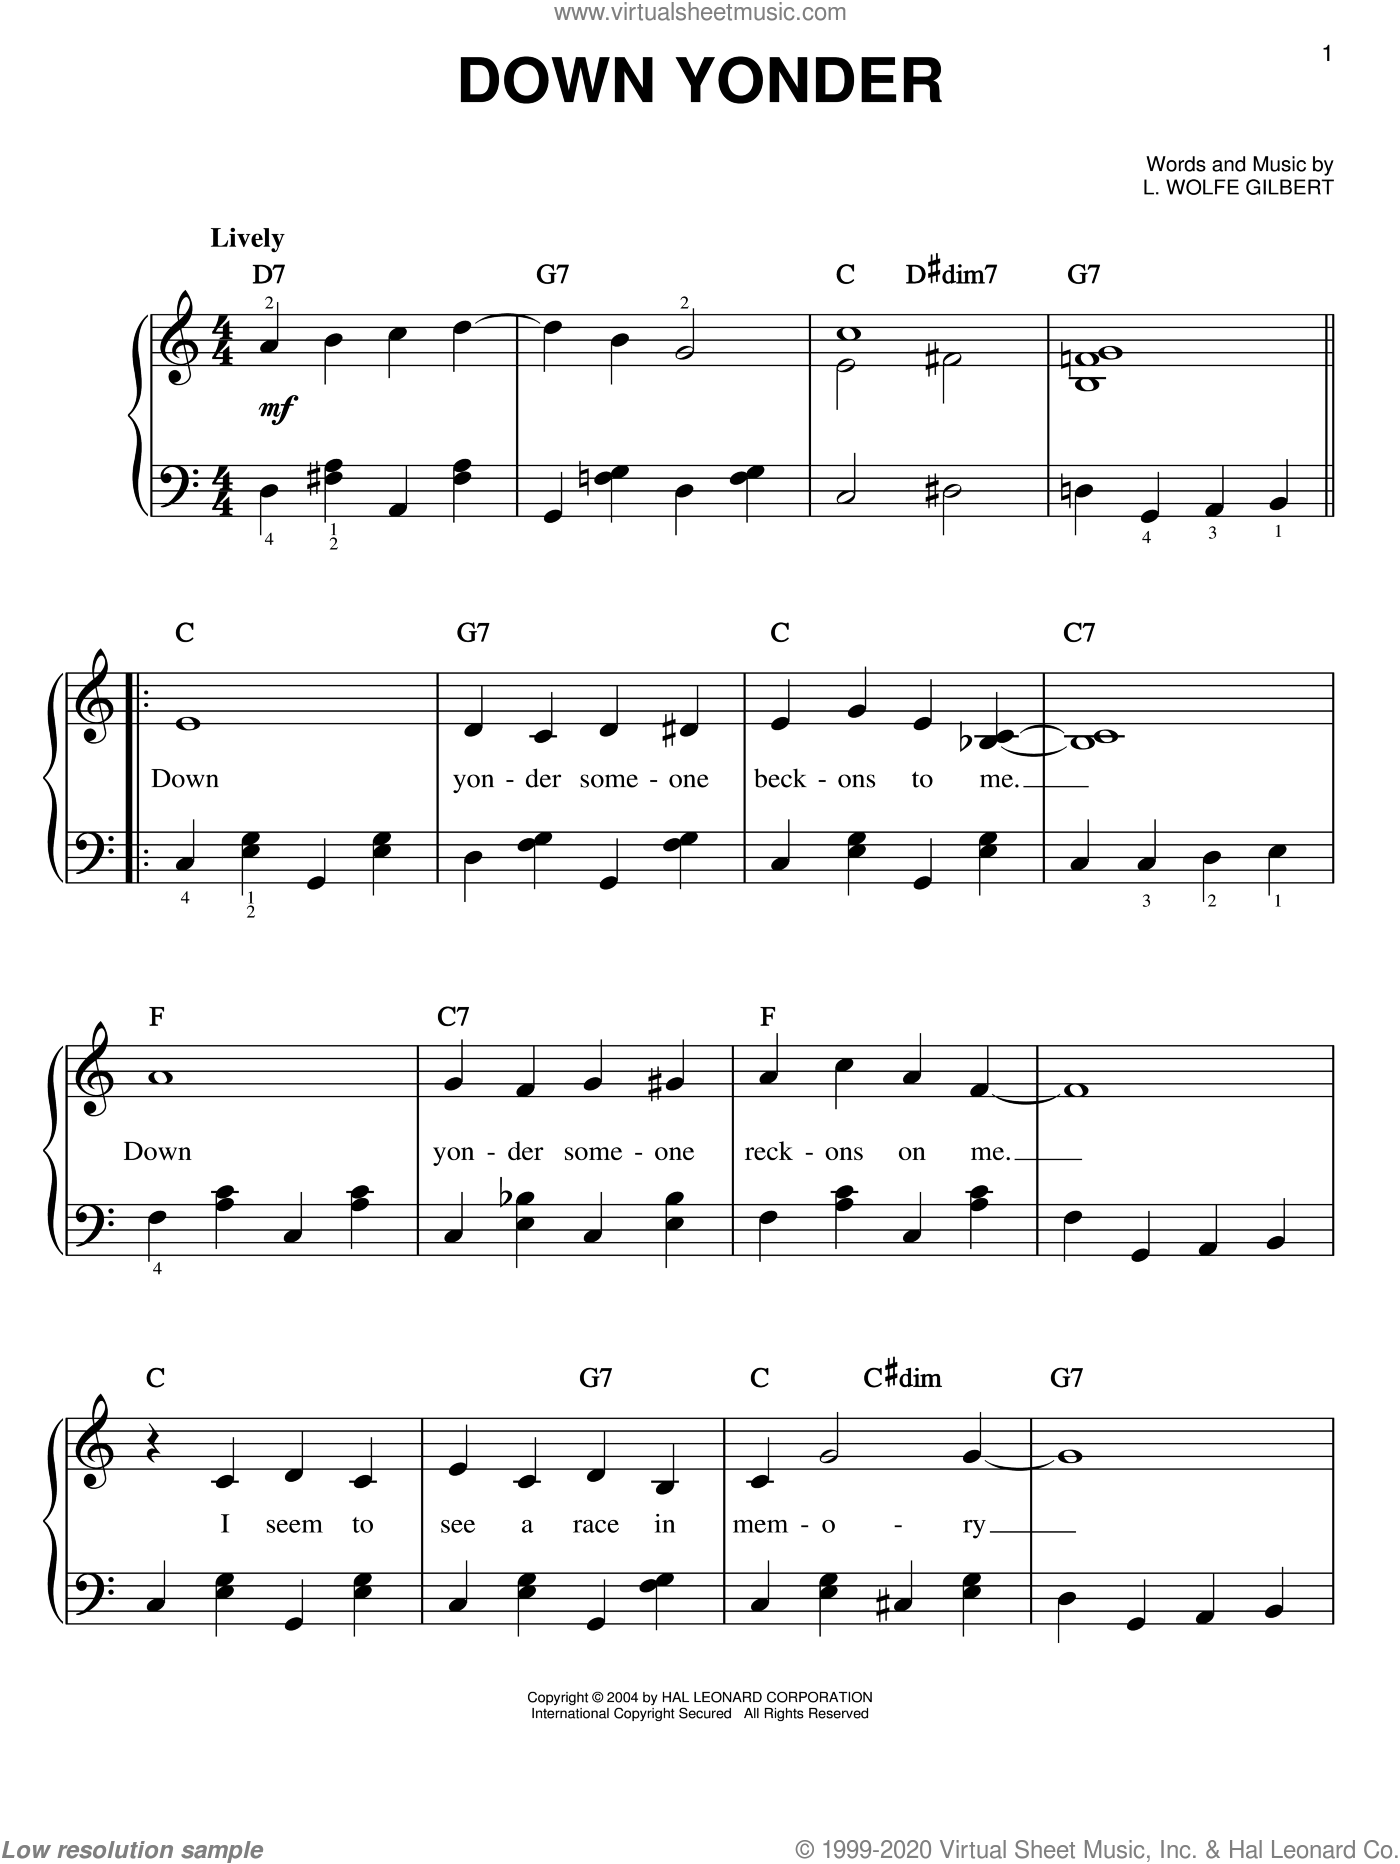 Down Yonder sheet music for piano solo (chords) by L. Wolfe Gilbert